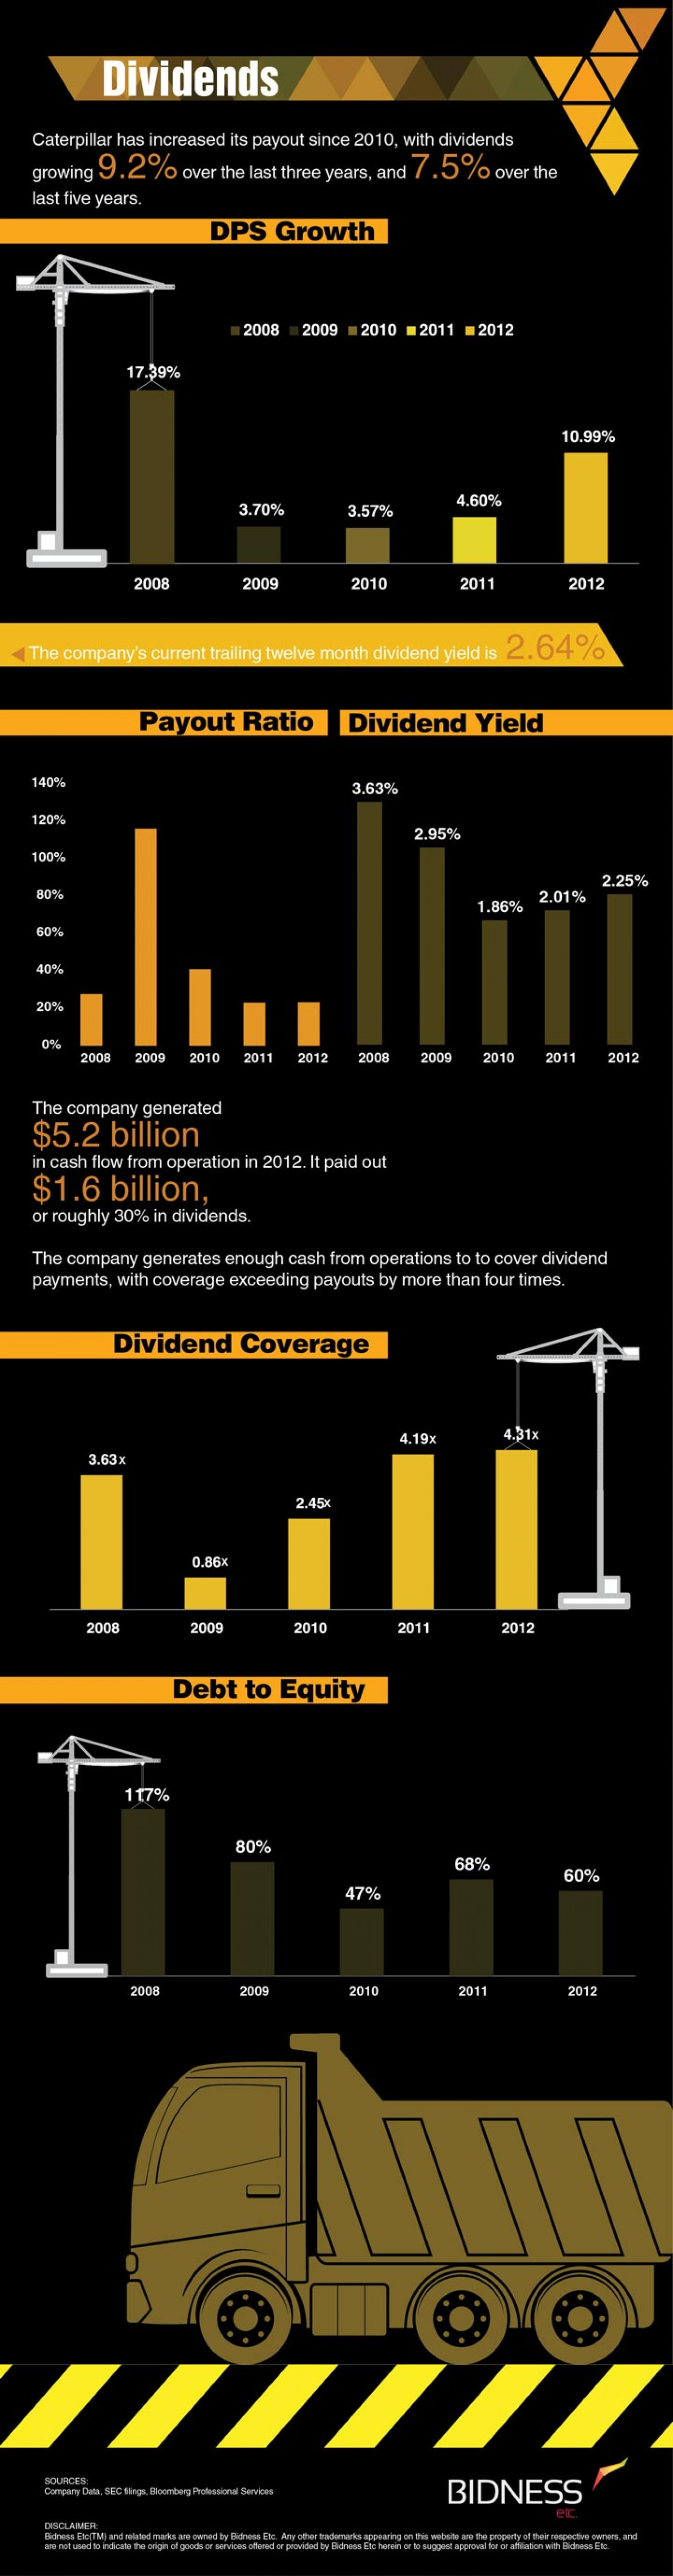 Caterpillar (CAT) Dividends Infographic